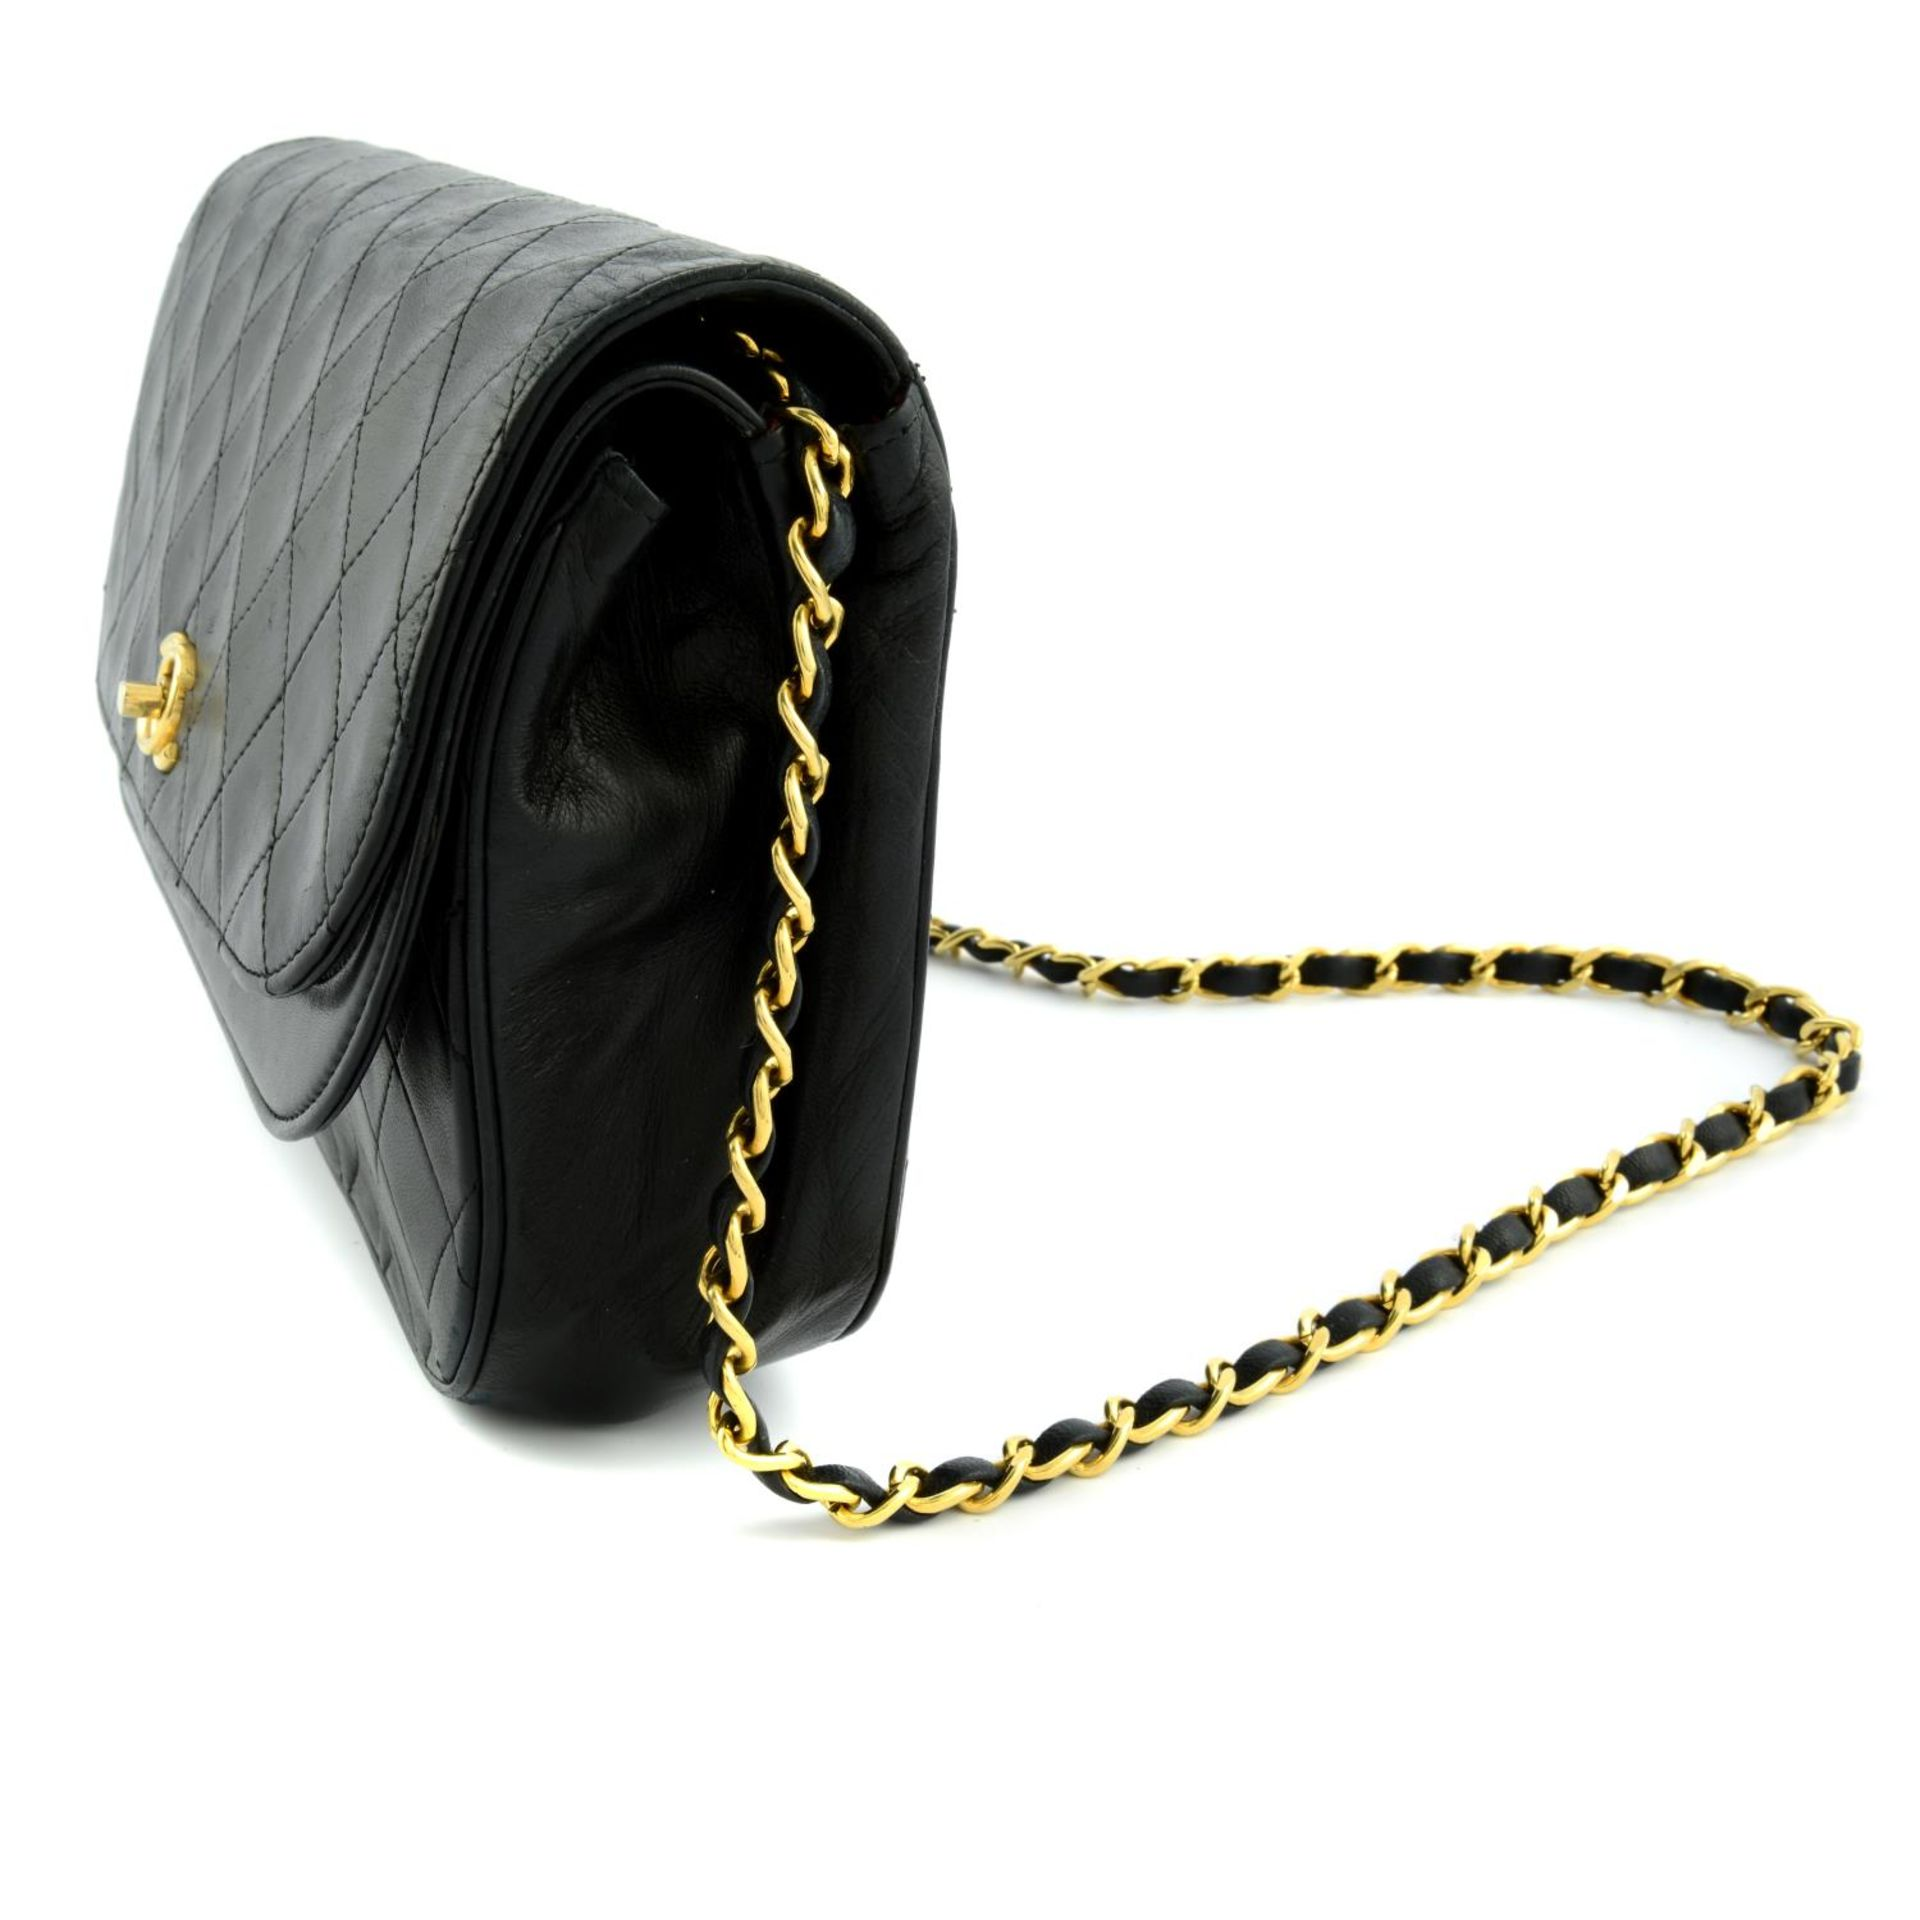 CHANEL - a leather double flap handbag. - Image 3 of 5